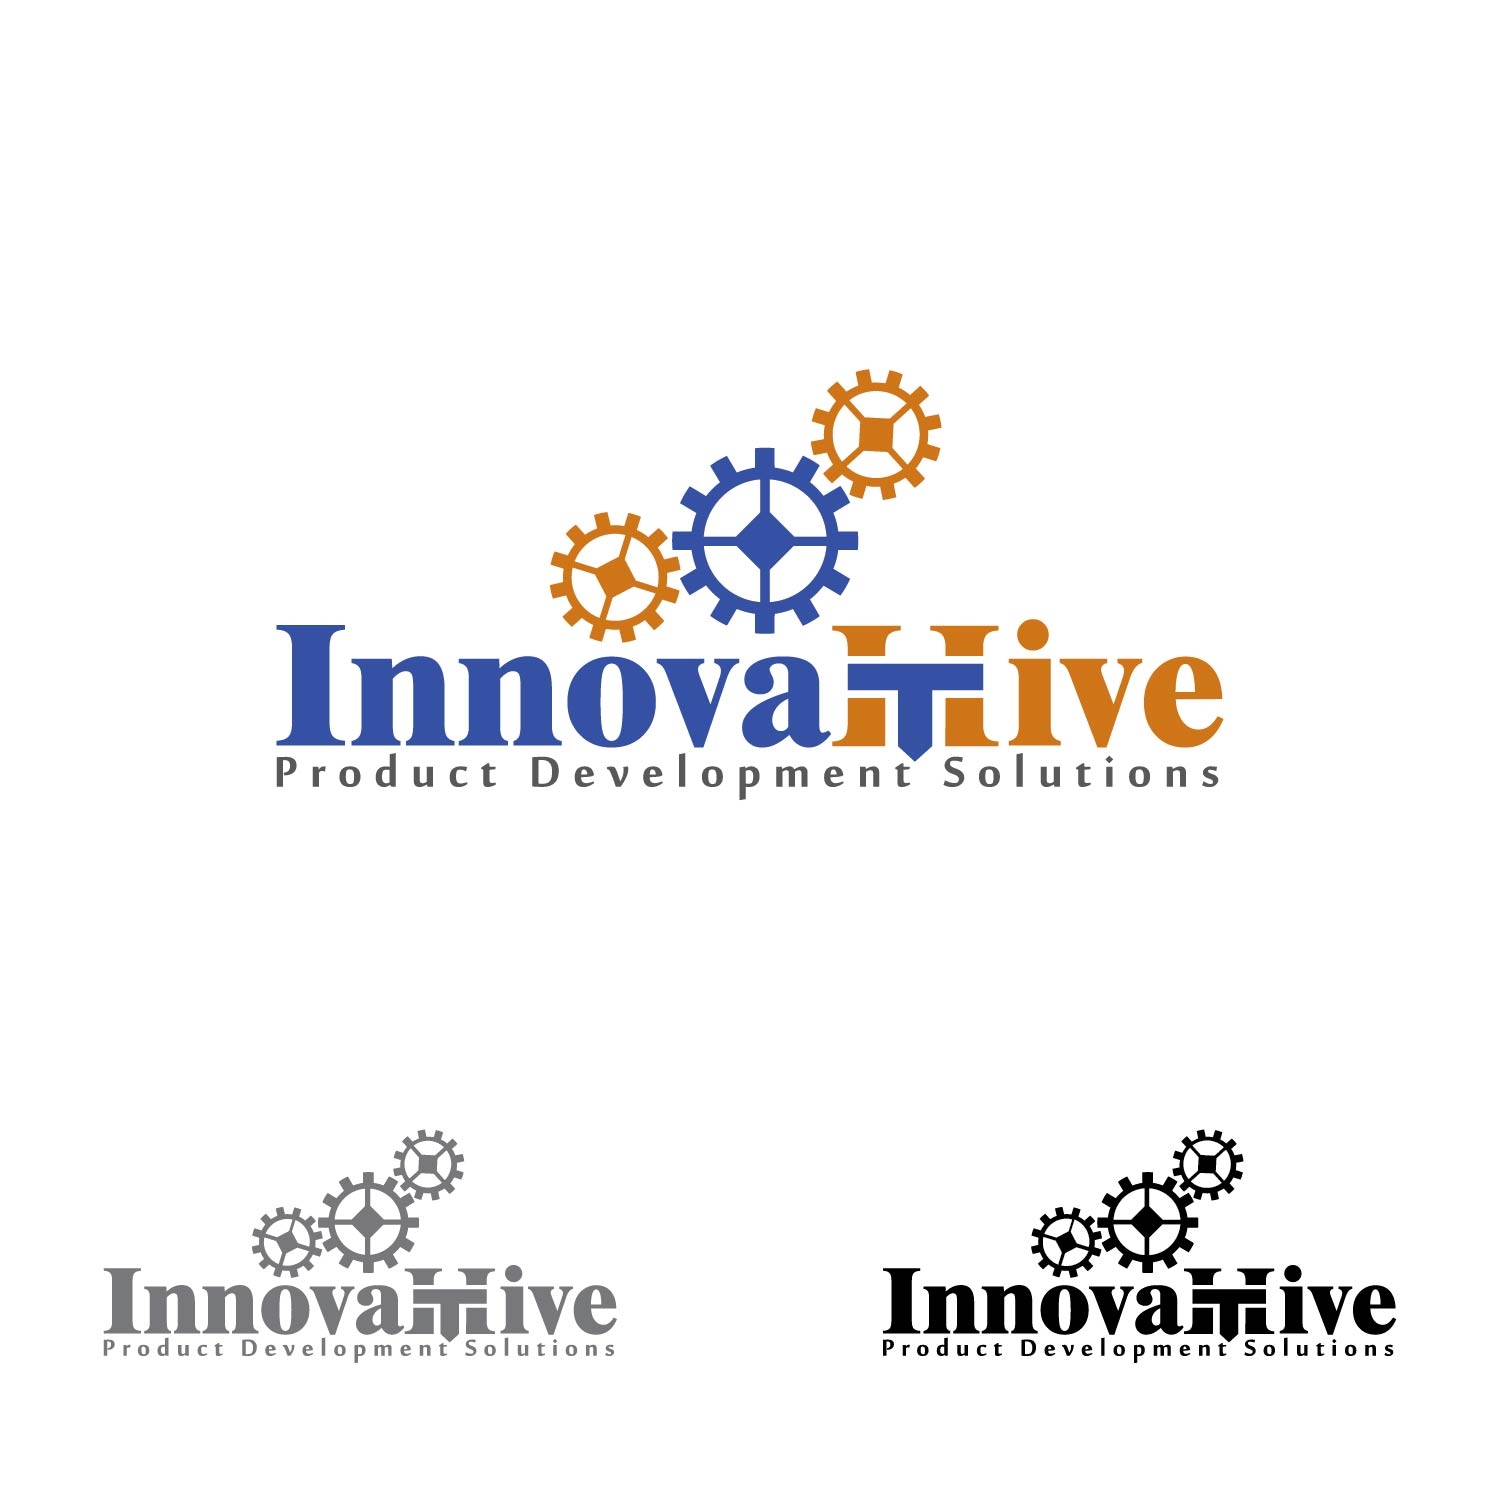 Logo Design by lagalag - Entry No. 22 in the Logo Design Contest InnovaHive Logo Design.